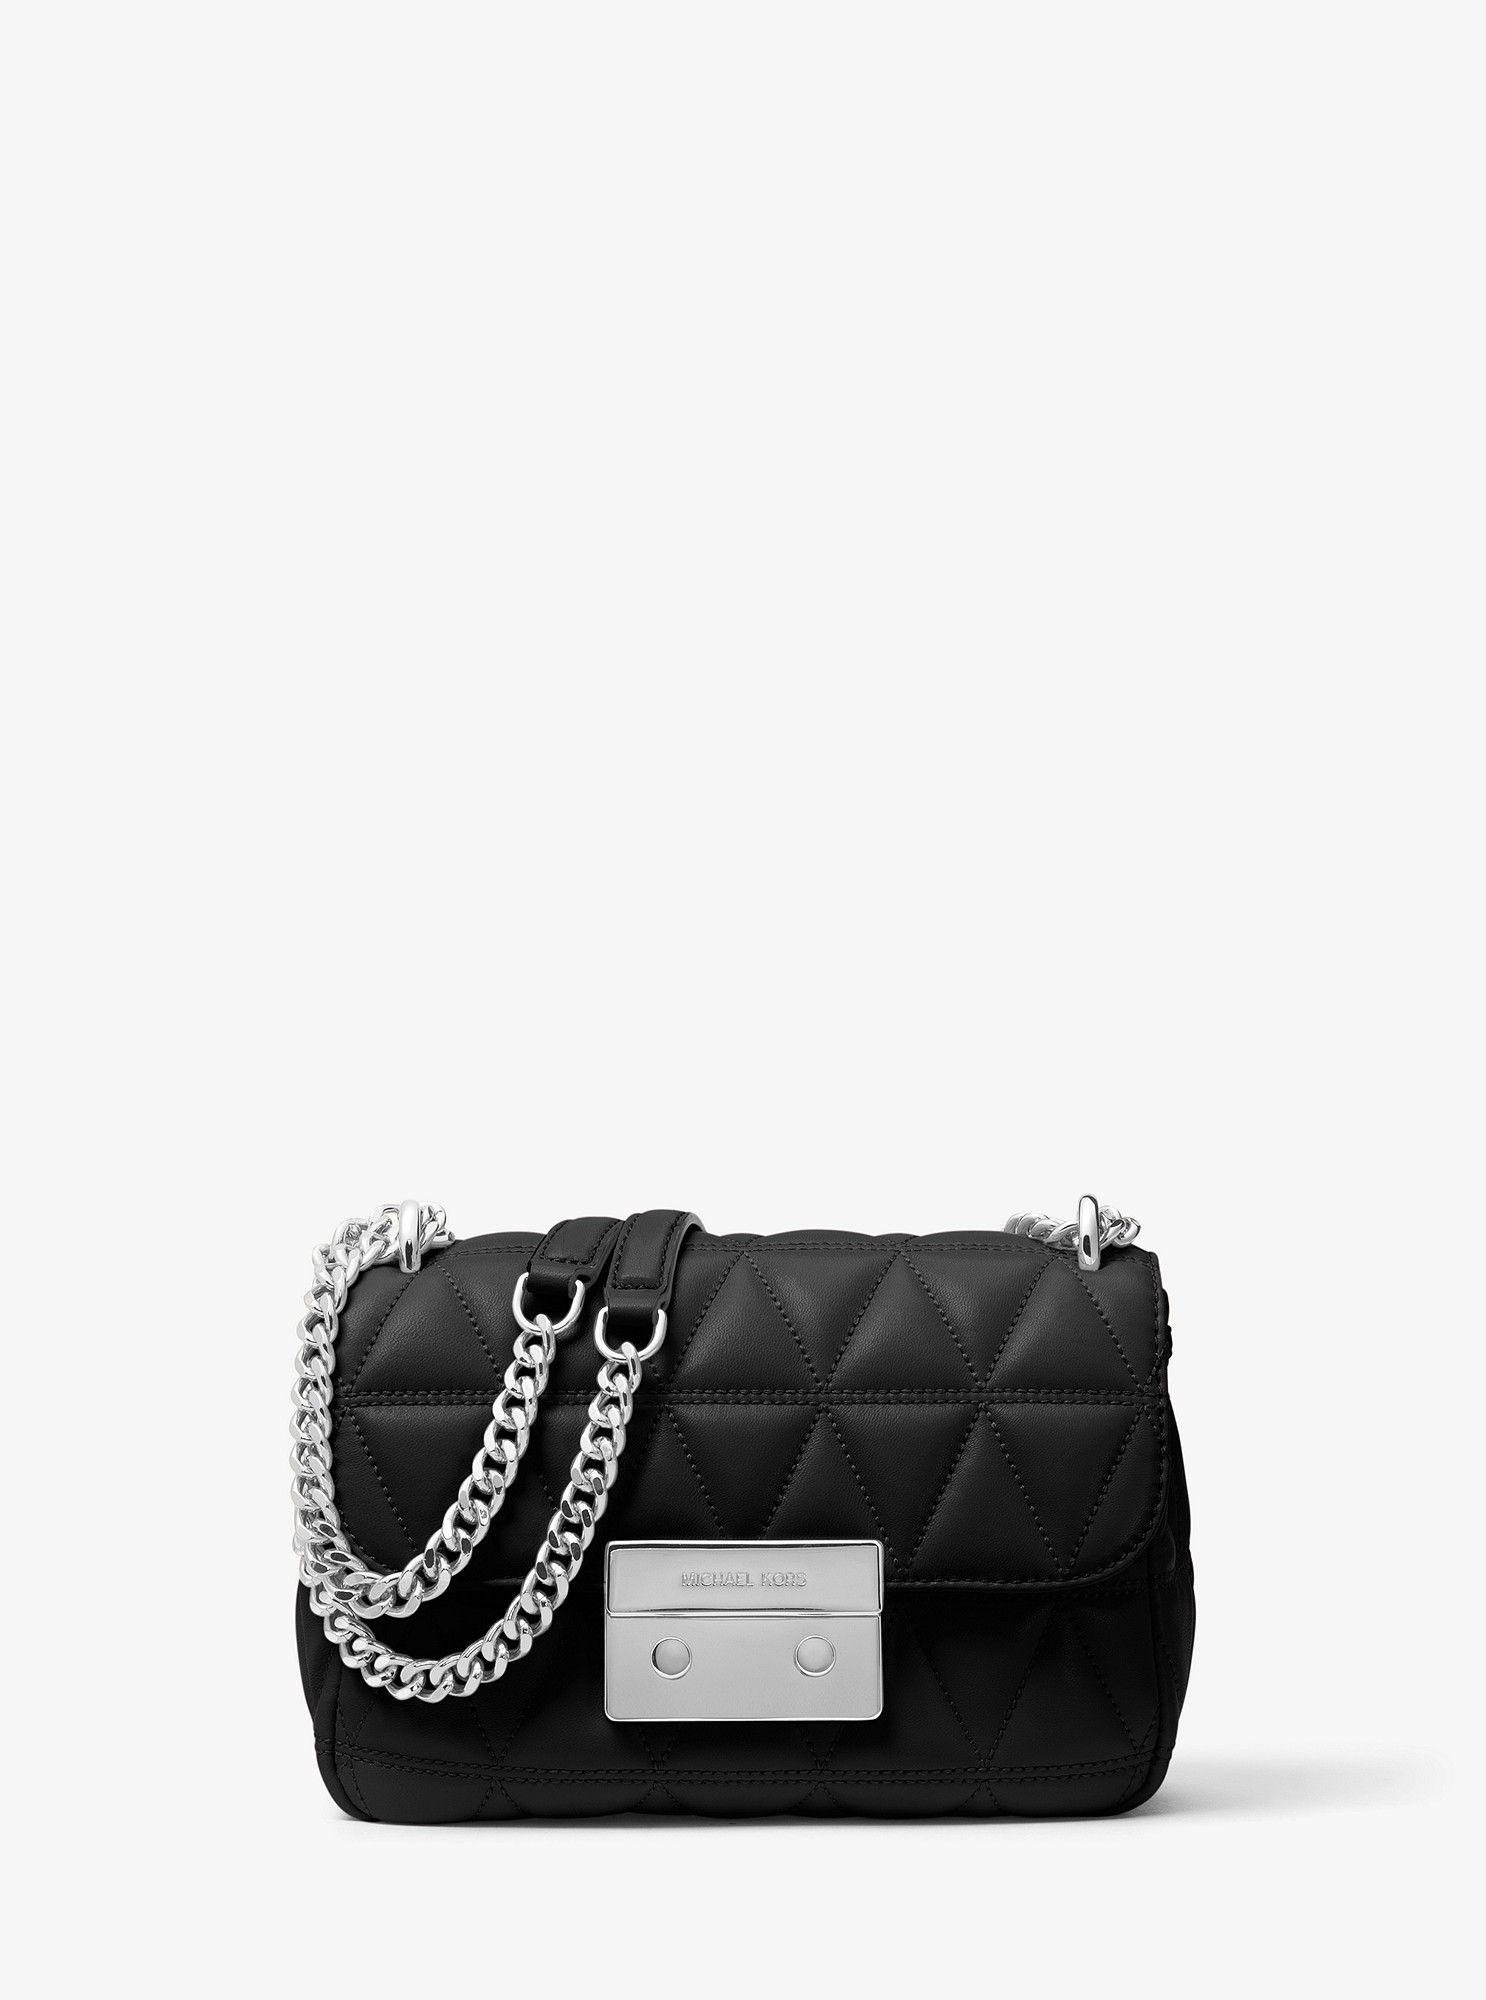 504852c265c6 Michael Kors Sloan Small Quilted-Leather Crossbody - Pearl Grey ...